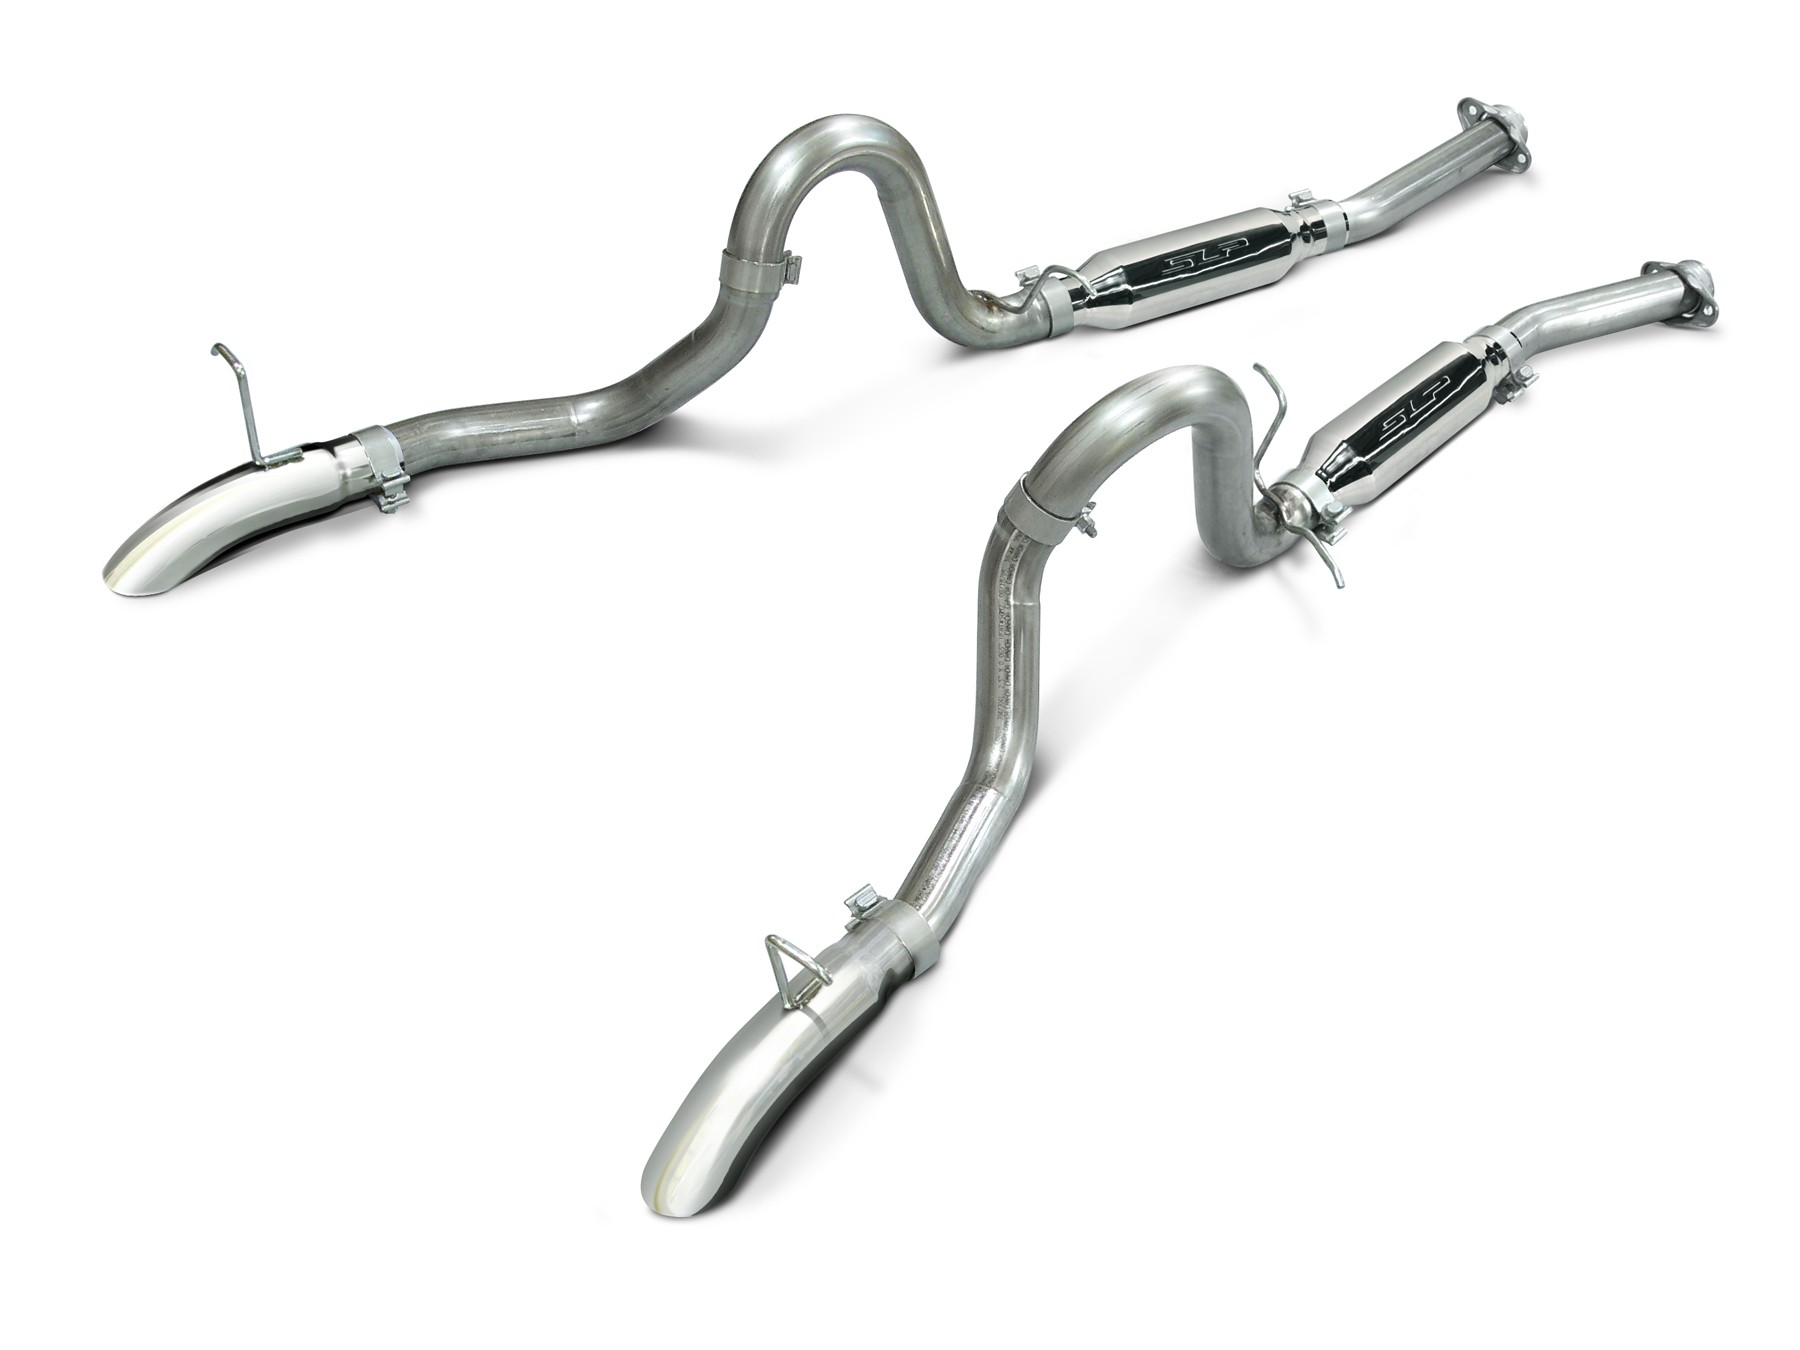 Mustang Gt 5 0 Slp Loud Mouth Cat Back Exhaust